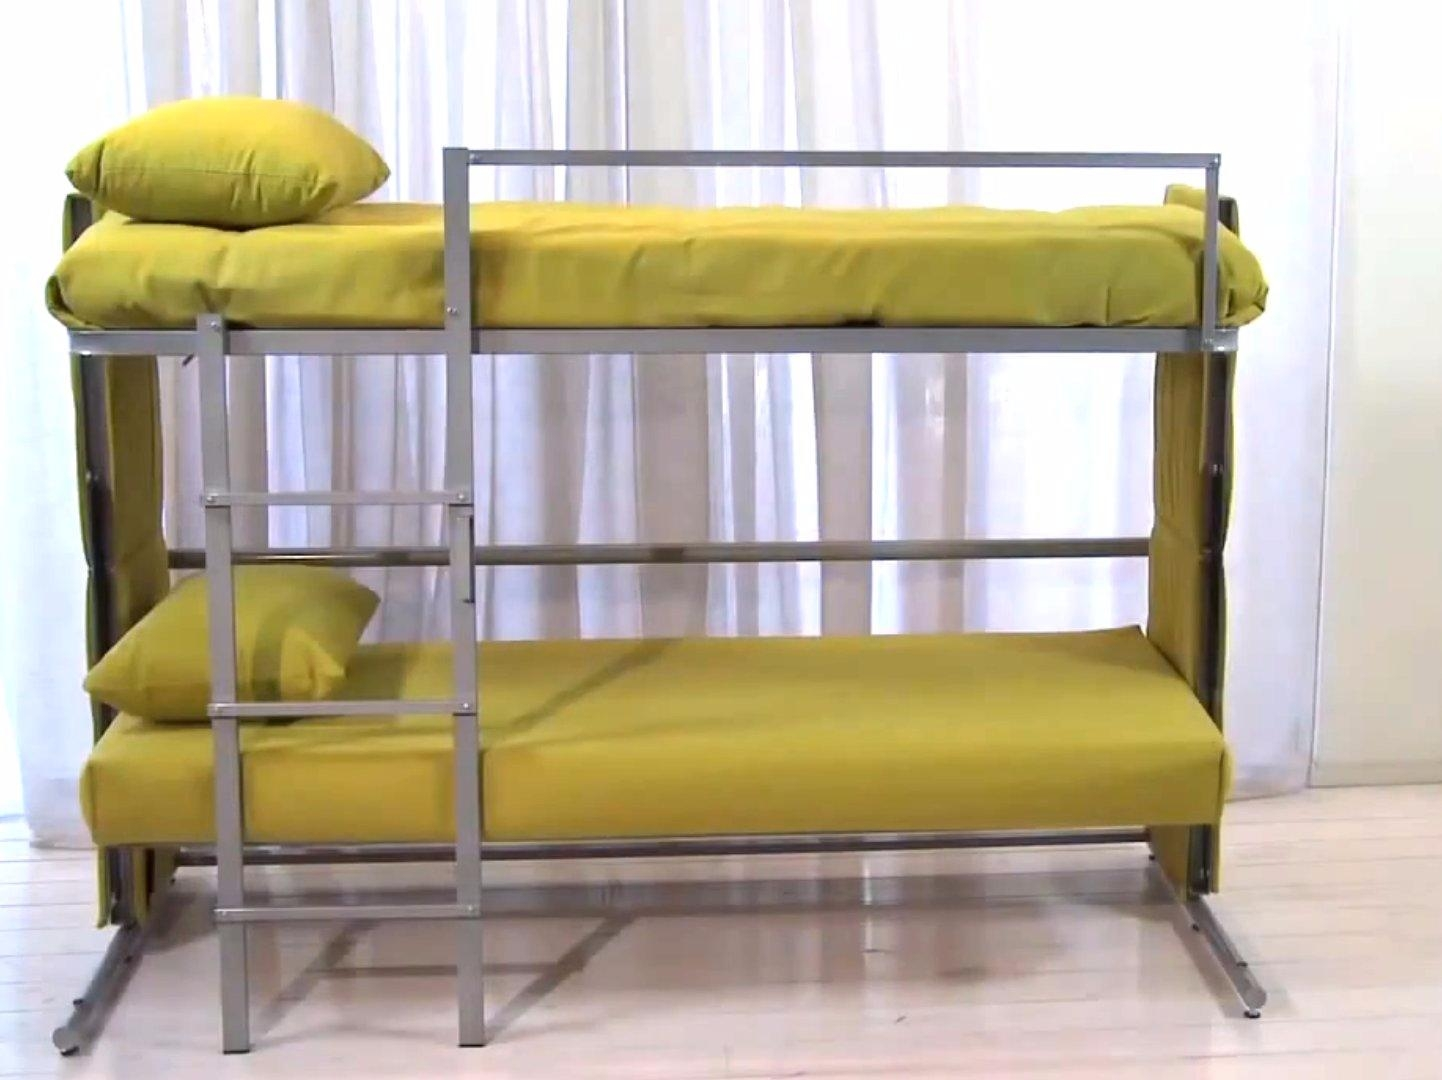 Sofa Folds Out Into A Bunk Bed – Business Insider Throughout Sofa Bunk Beds (View 9 of 20)